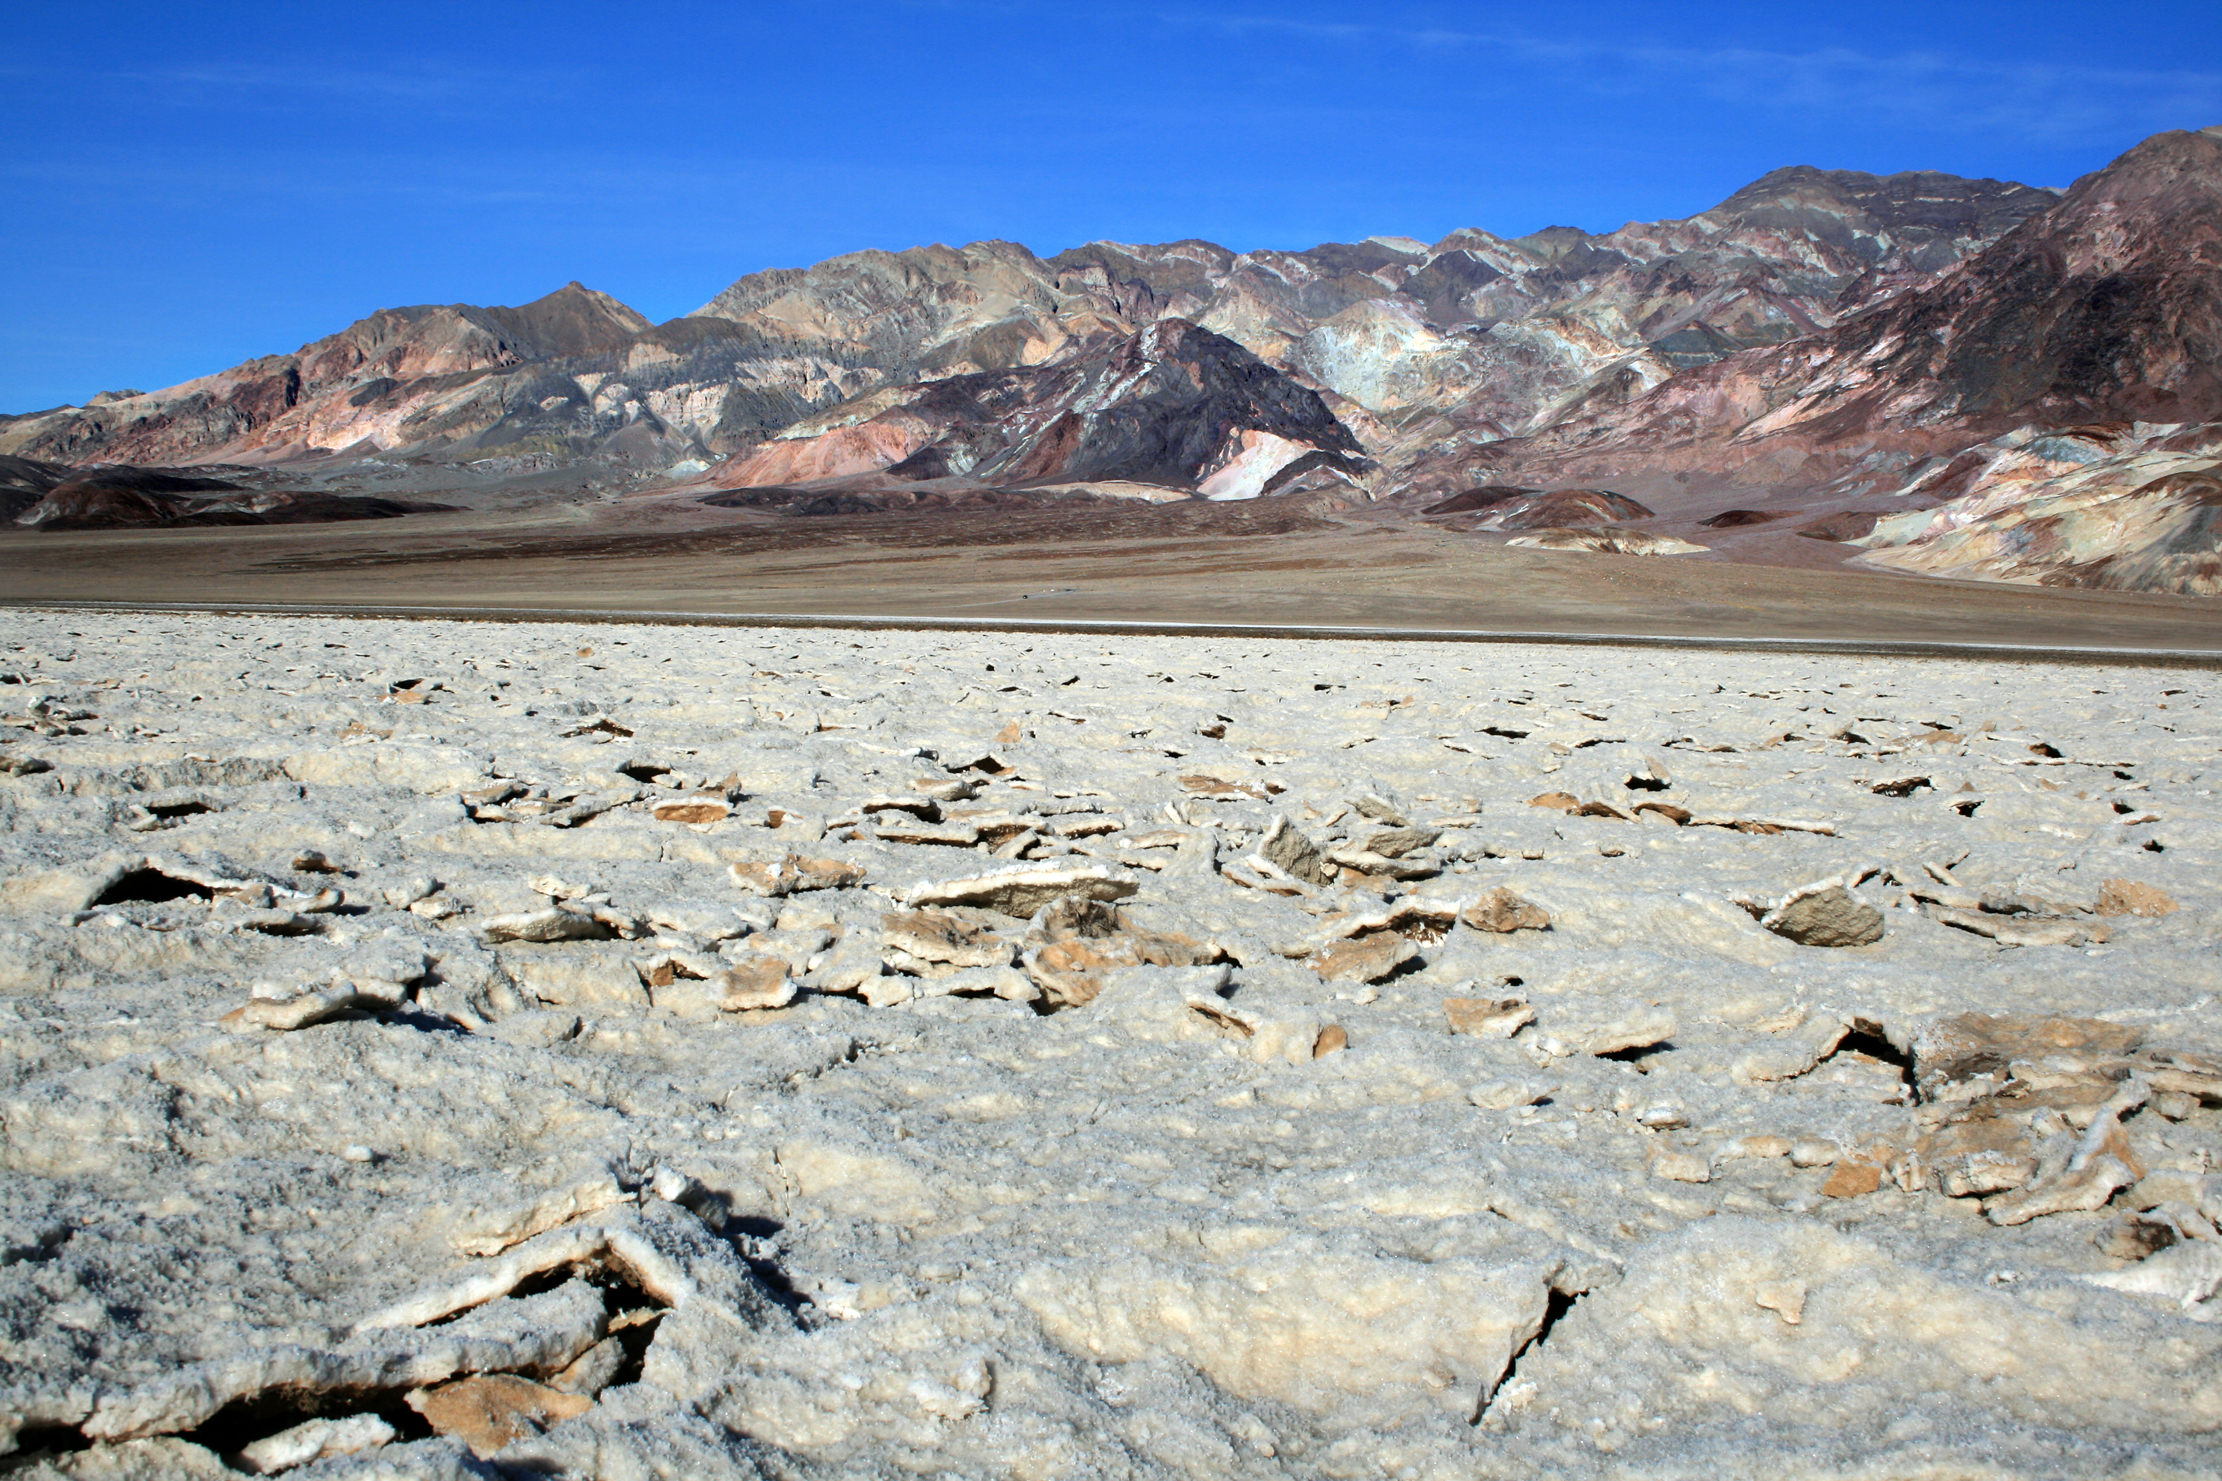 Lonely Yet Beautiful Death Valley Landscapes (40 PICS)